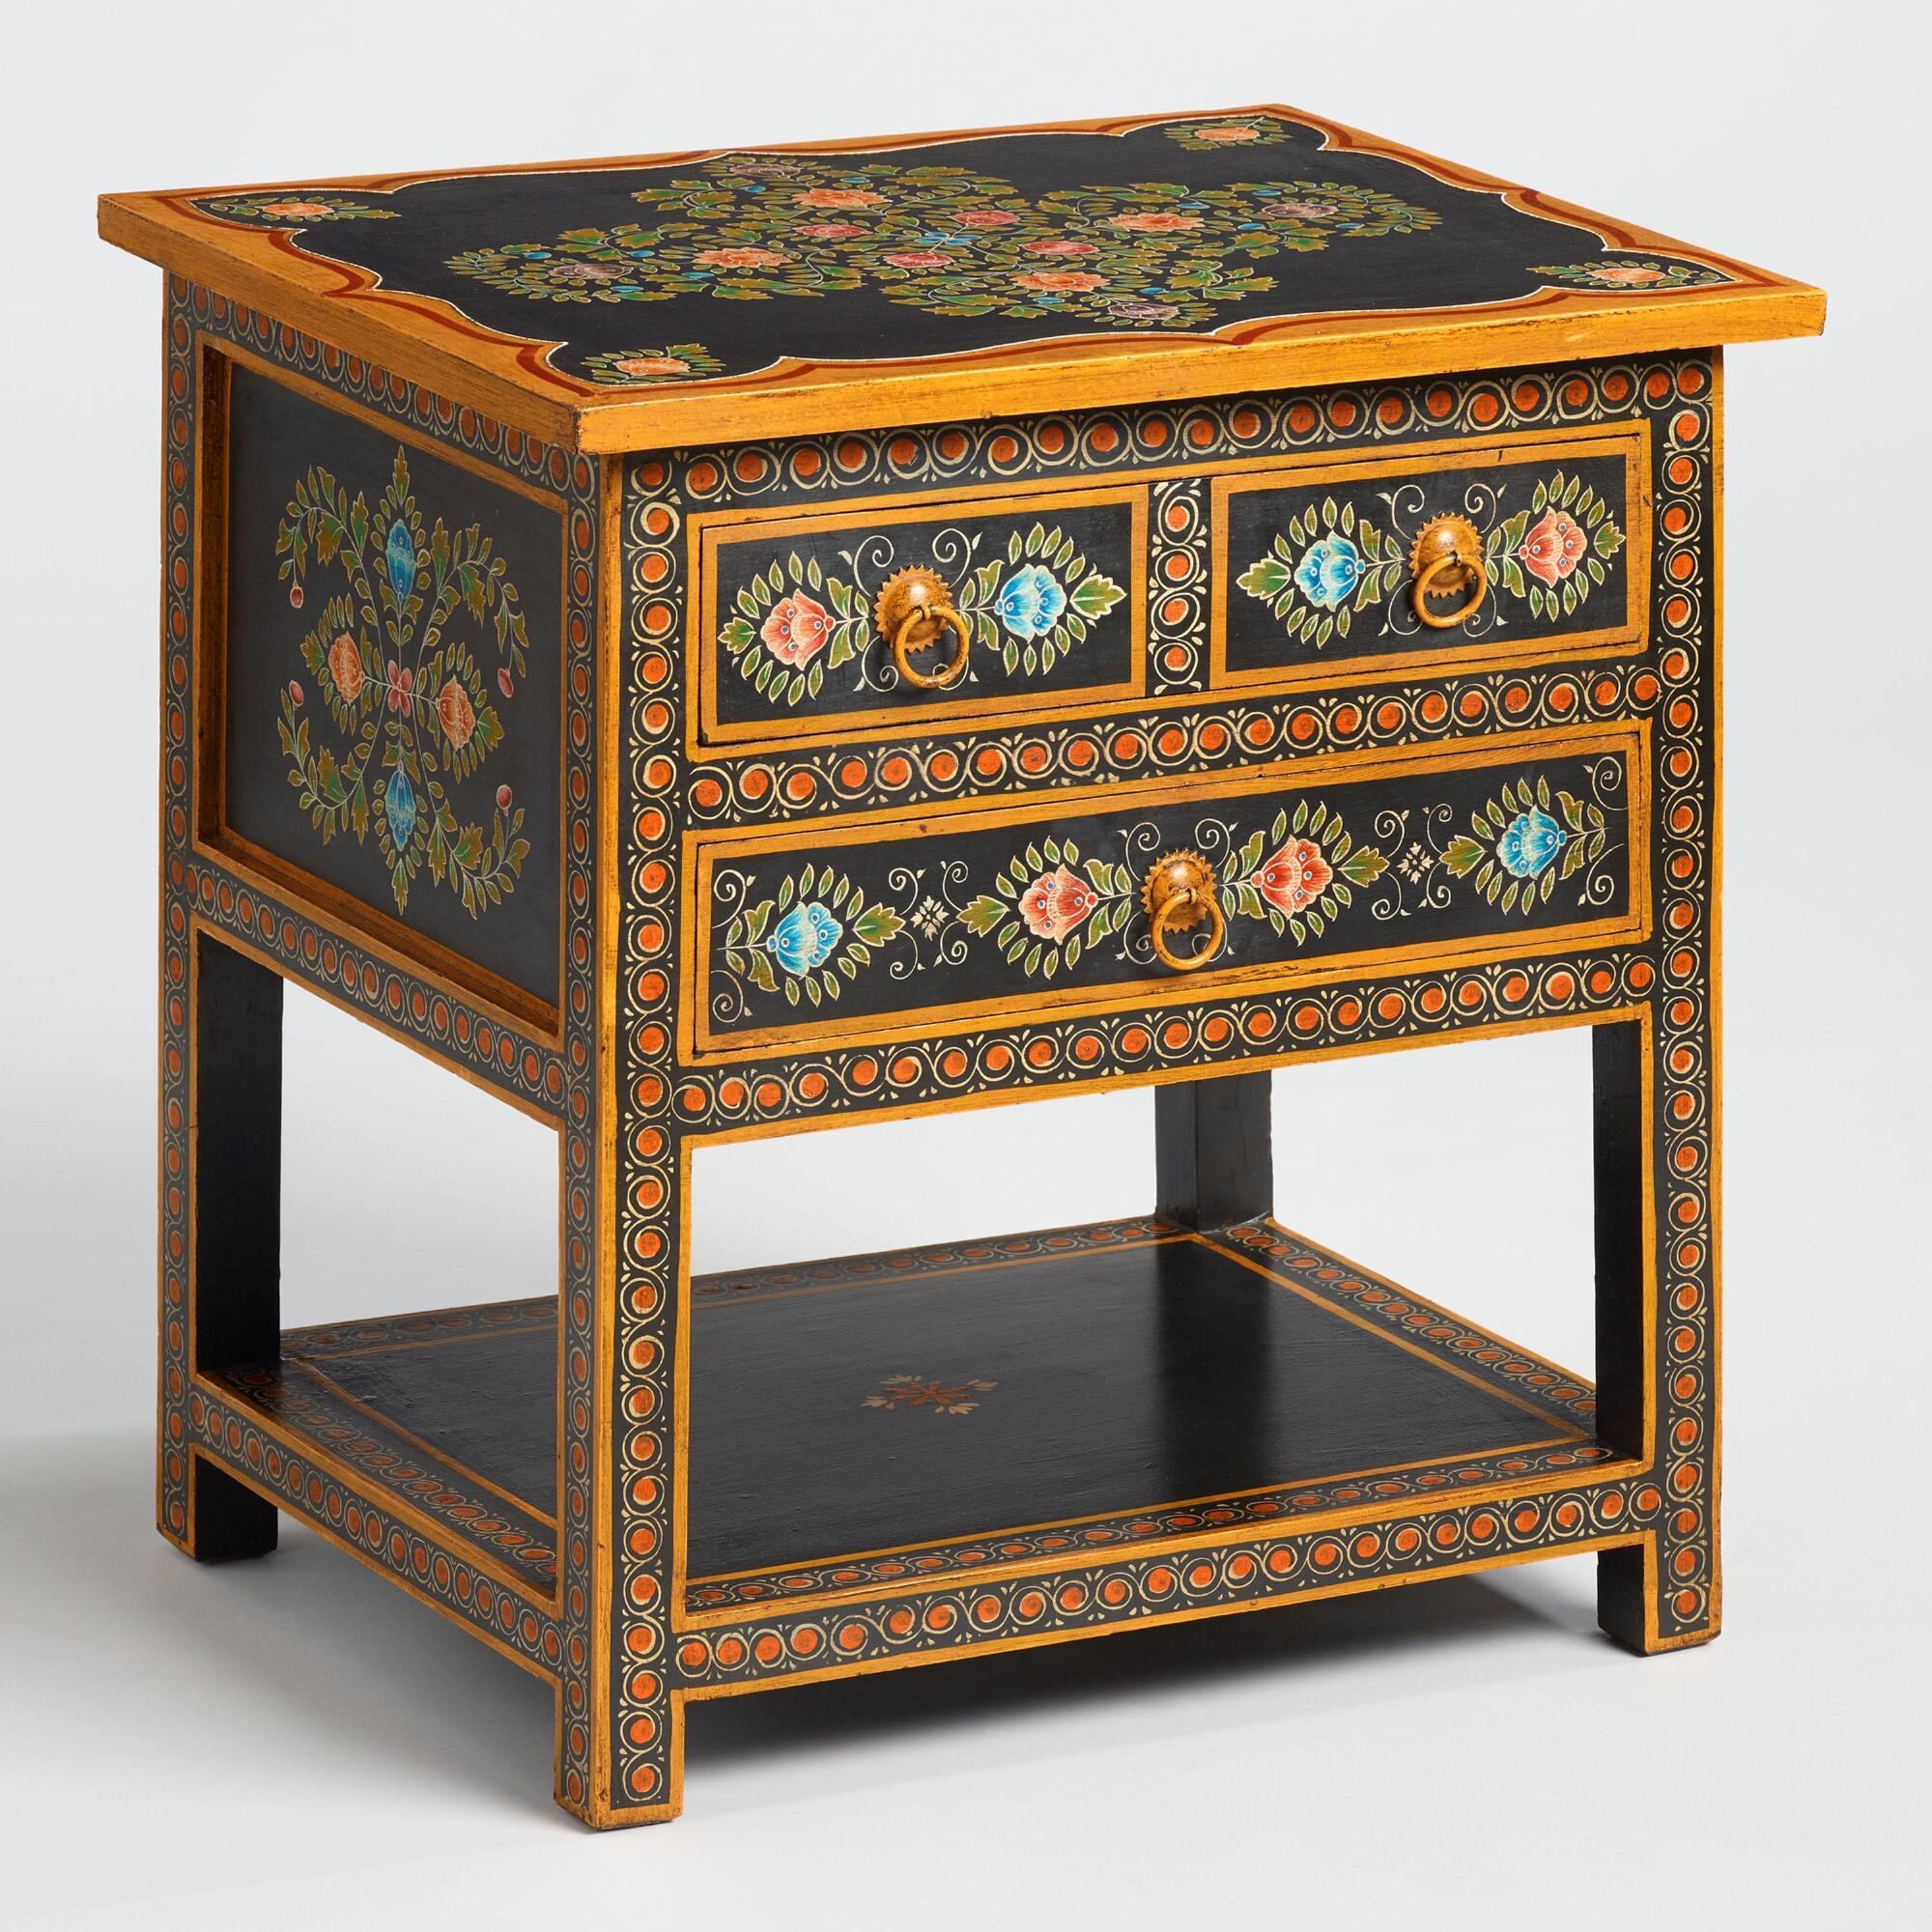 Floral Painted Wood Side Table: Black/Multi by World Market